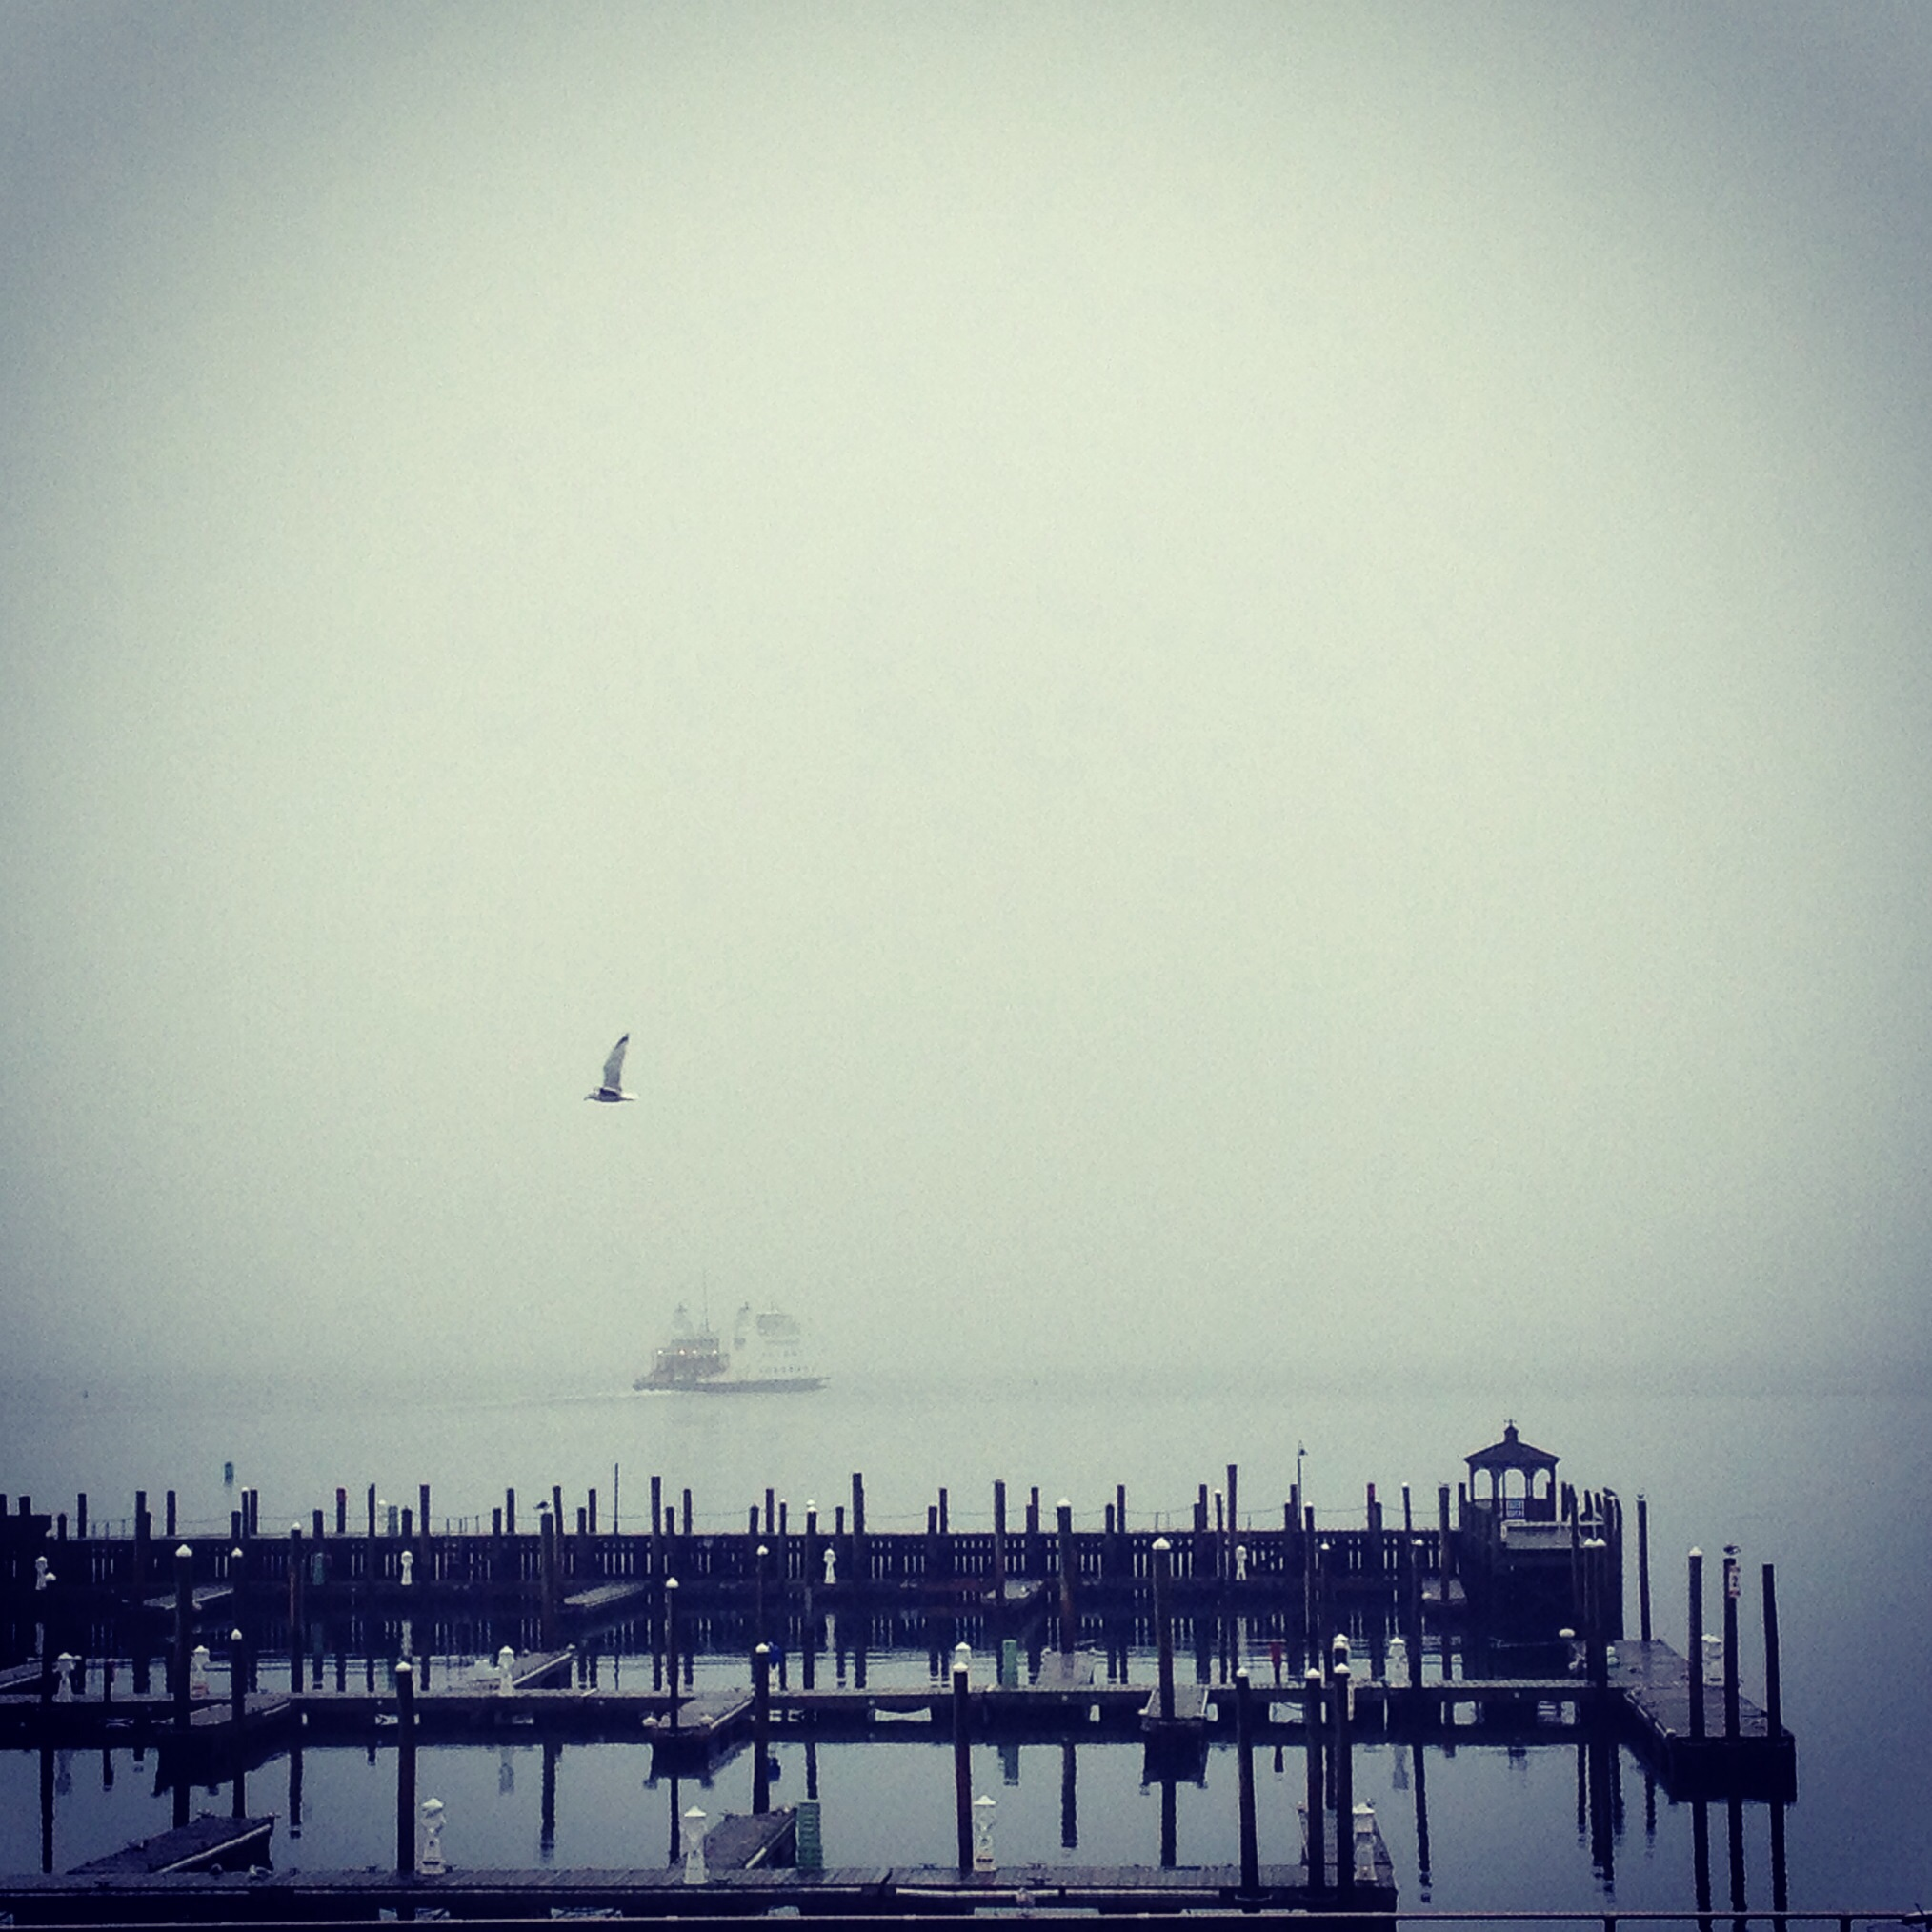 Fog in Port Jefferson Harbor - Danfords Hotel and Marina